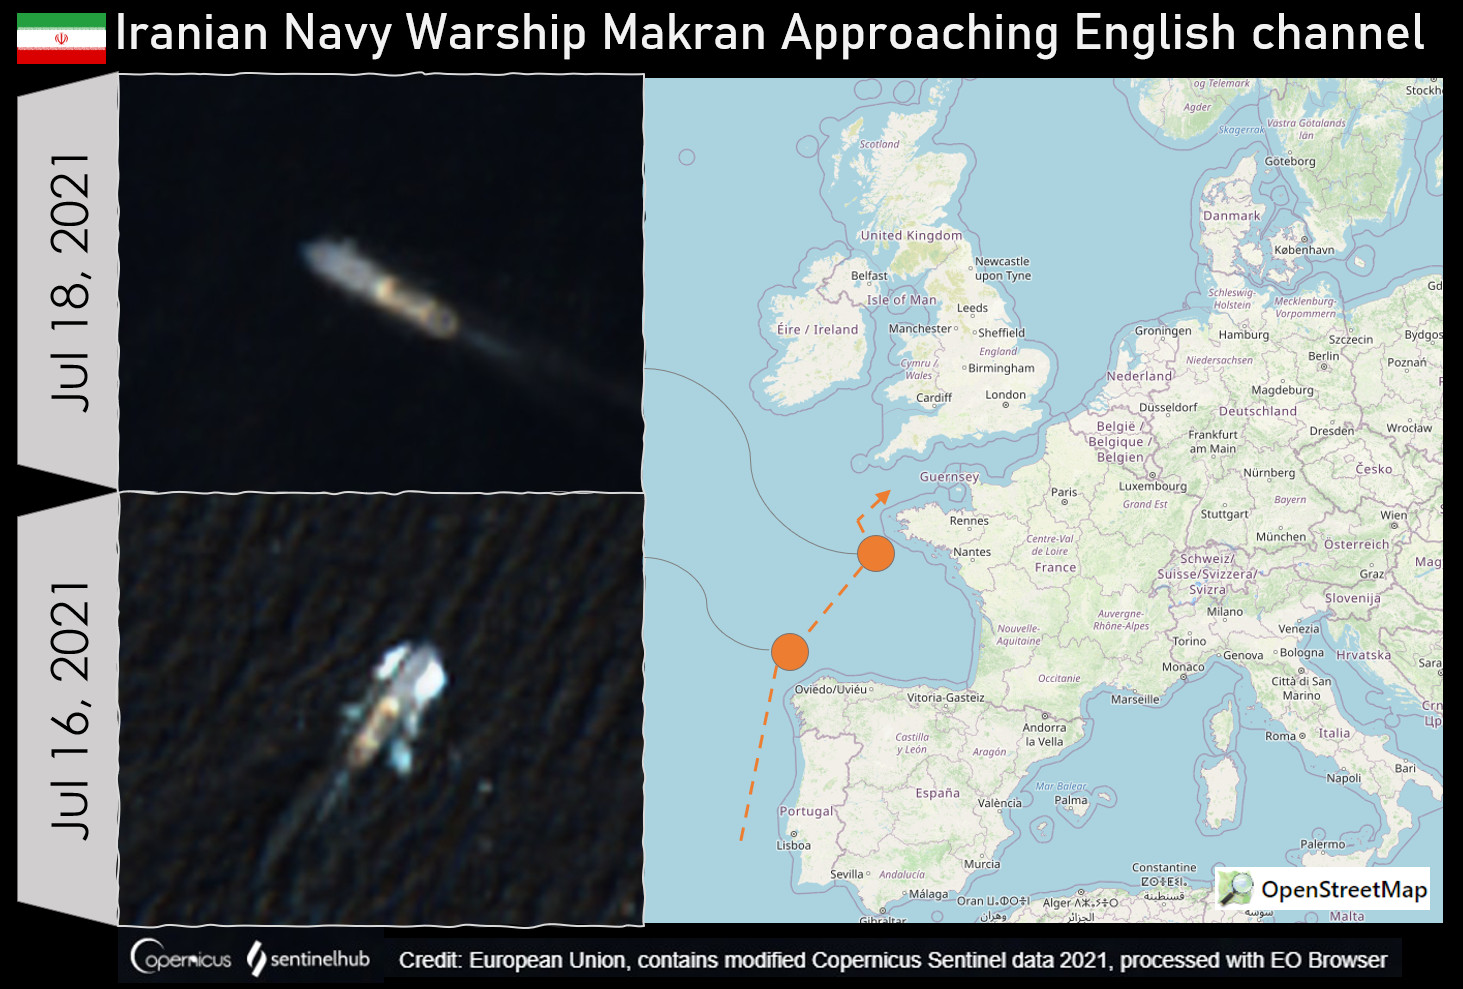 Two Iranian Warships Spotted Near English Channel